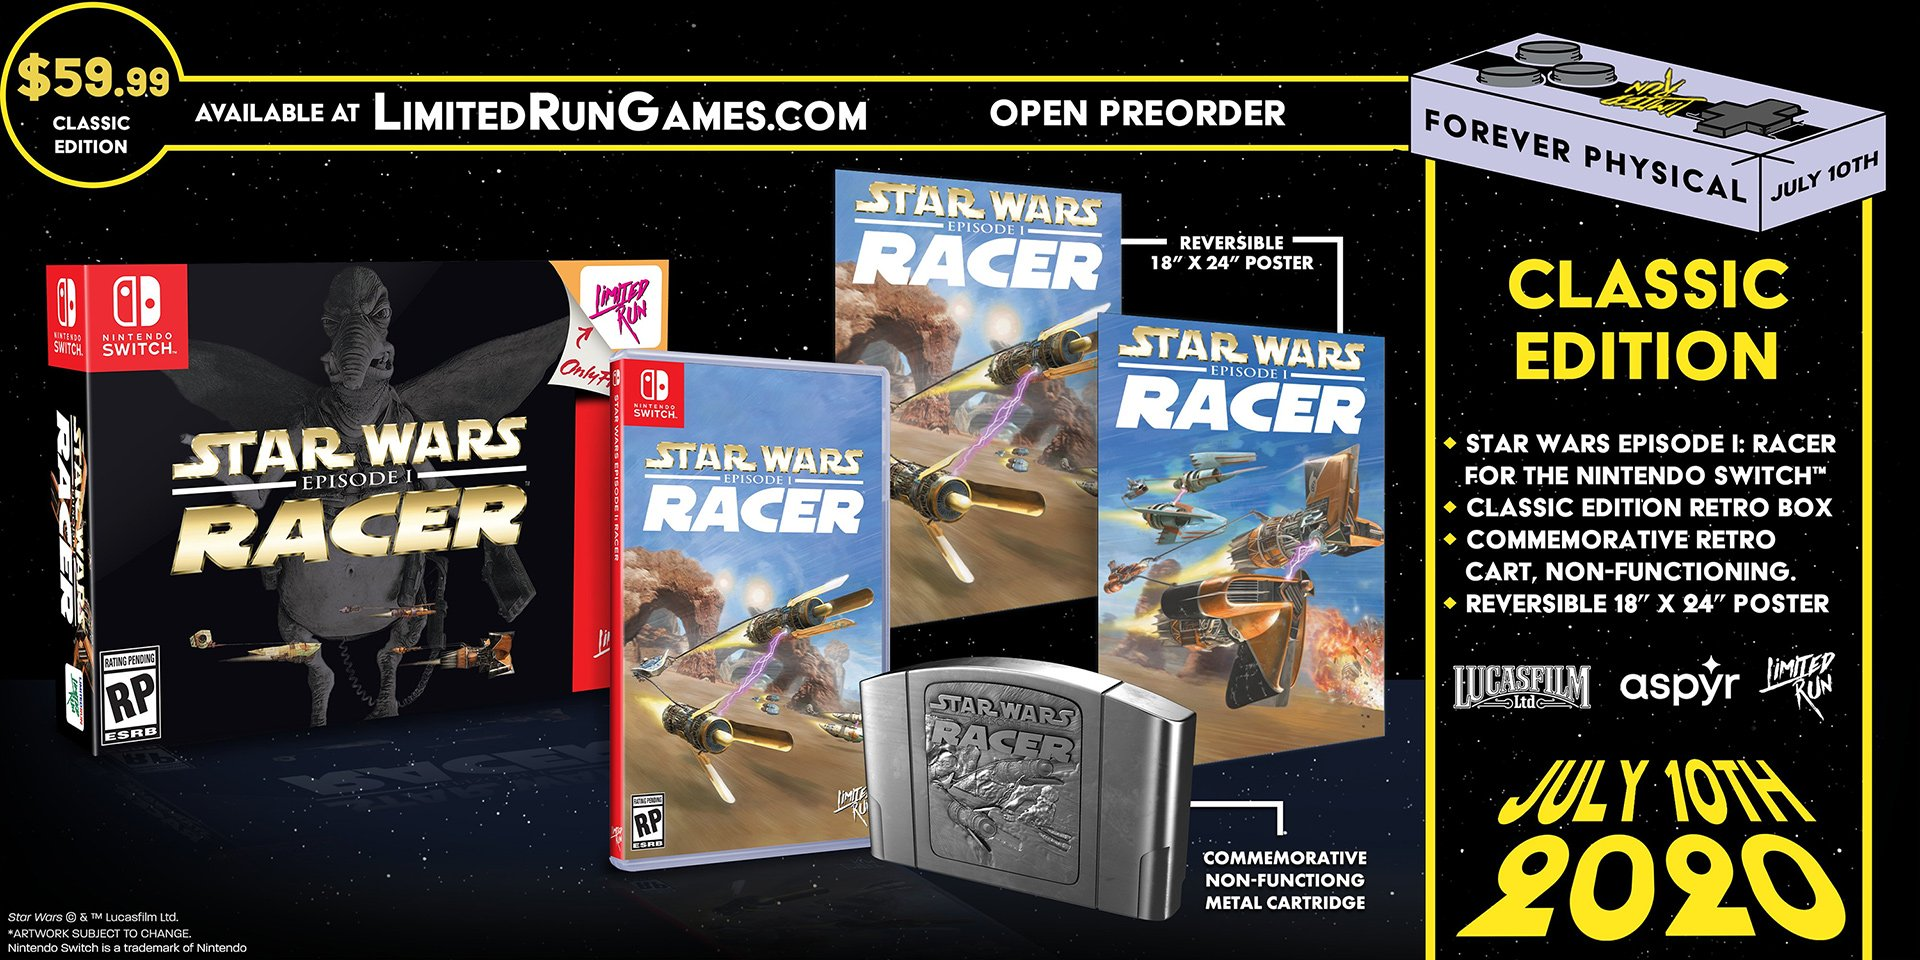 Star Wars Episode I: Racer classic edition Limited Run Games